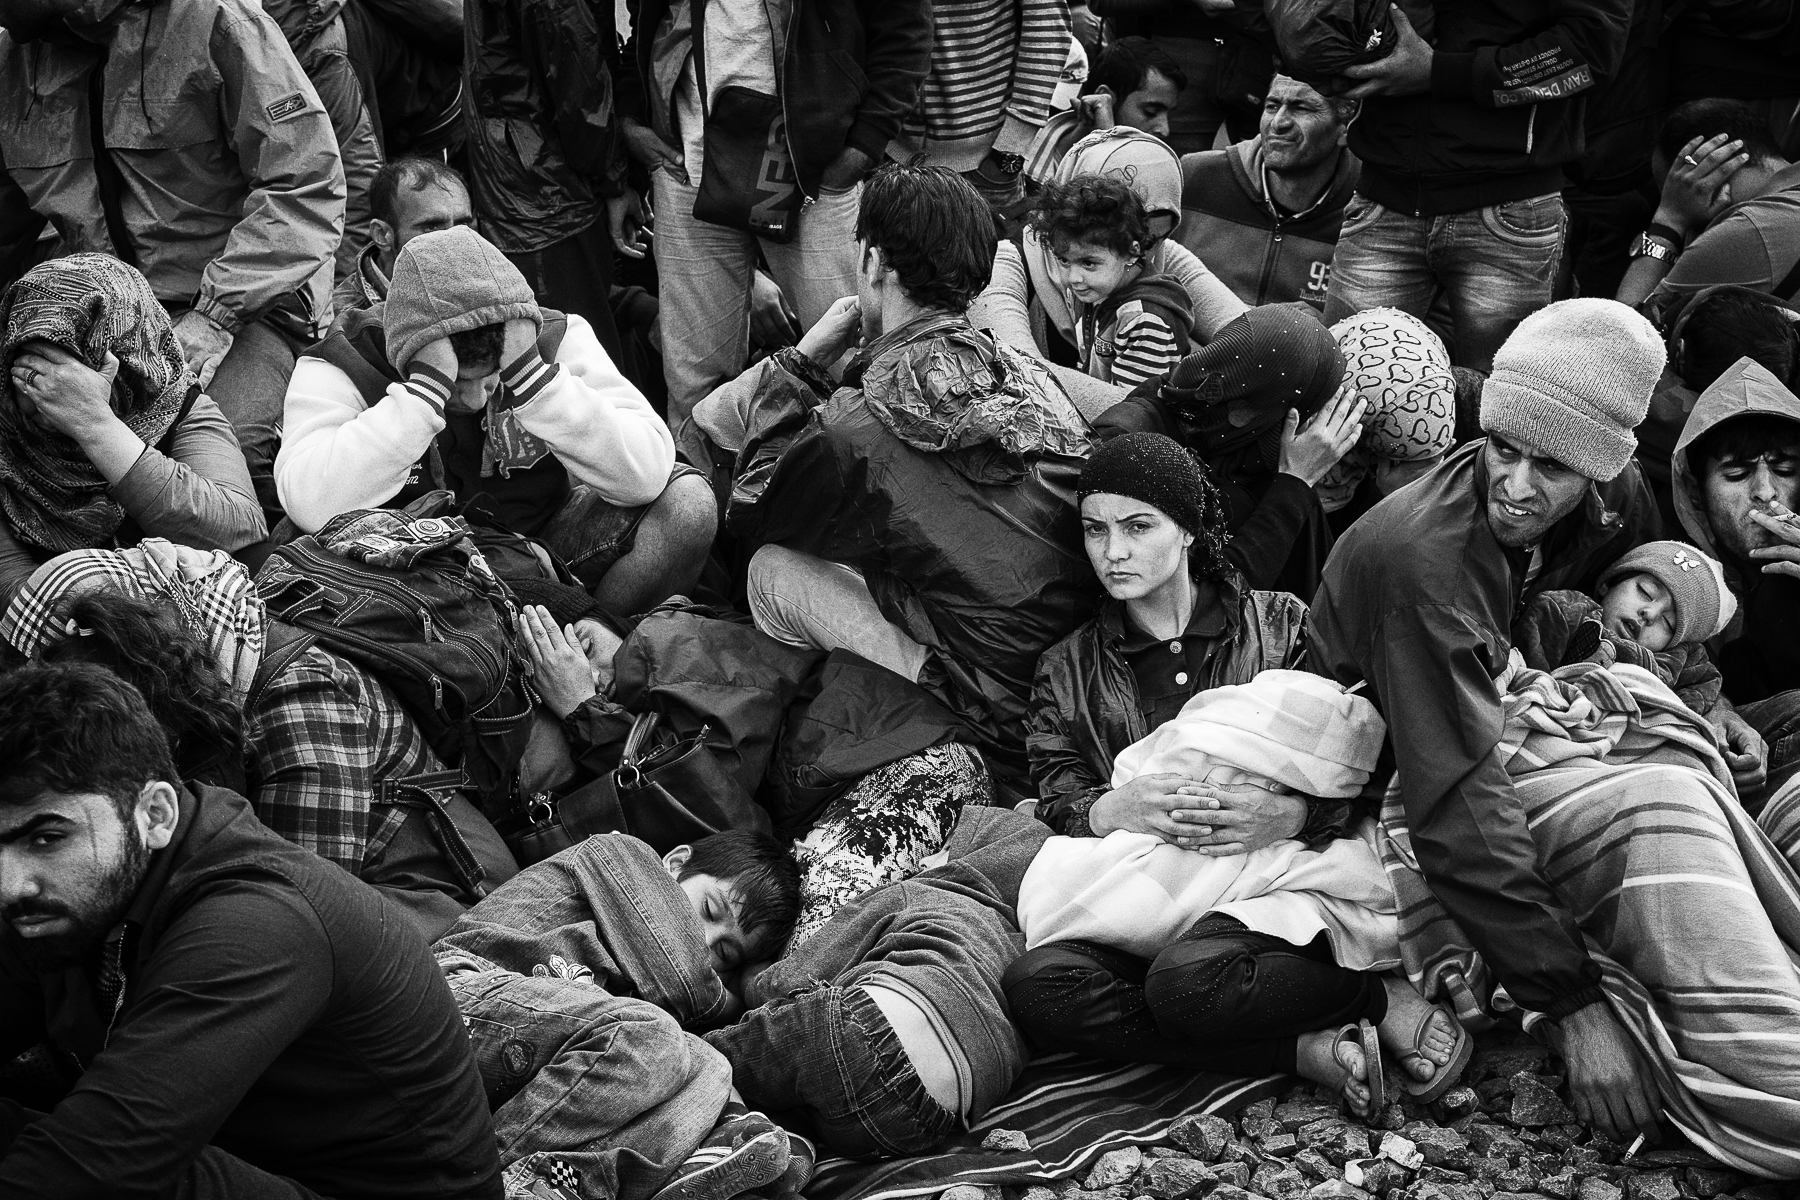 Croatie, septembre 2015. Des réfugiés attendent un train dans la gare de Tovarnik.Croatia, Septembre 2015. Refugees from the middle east waiting for a train in Tovarnik railway station.